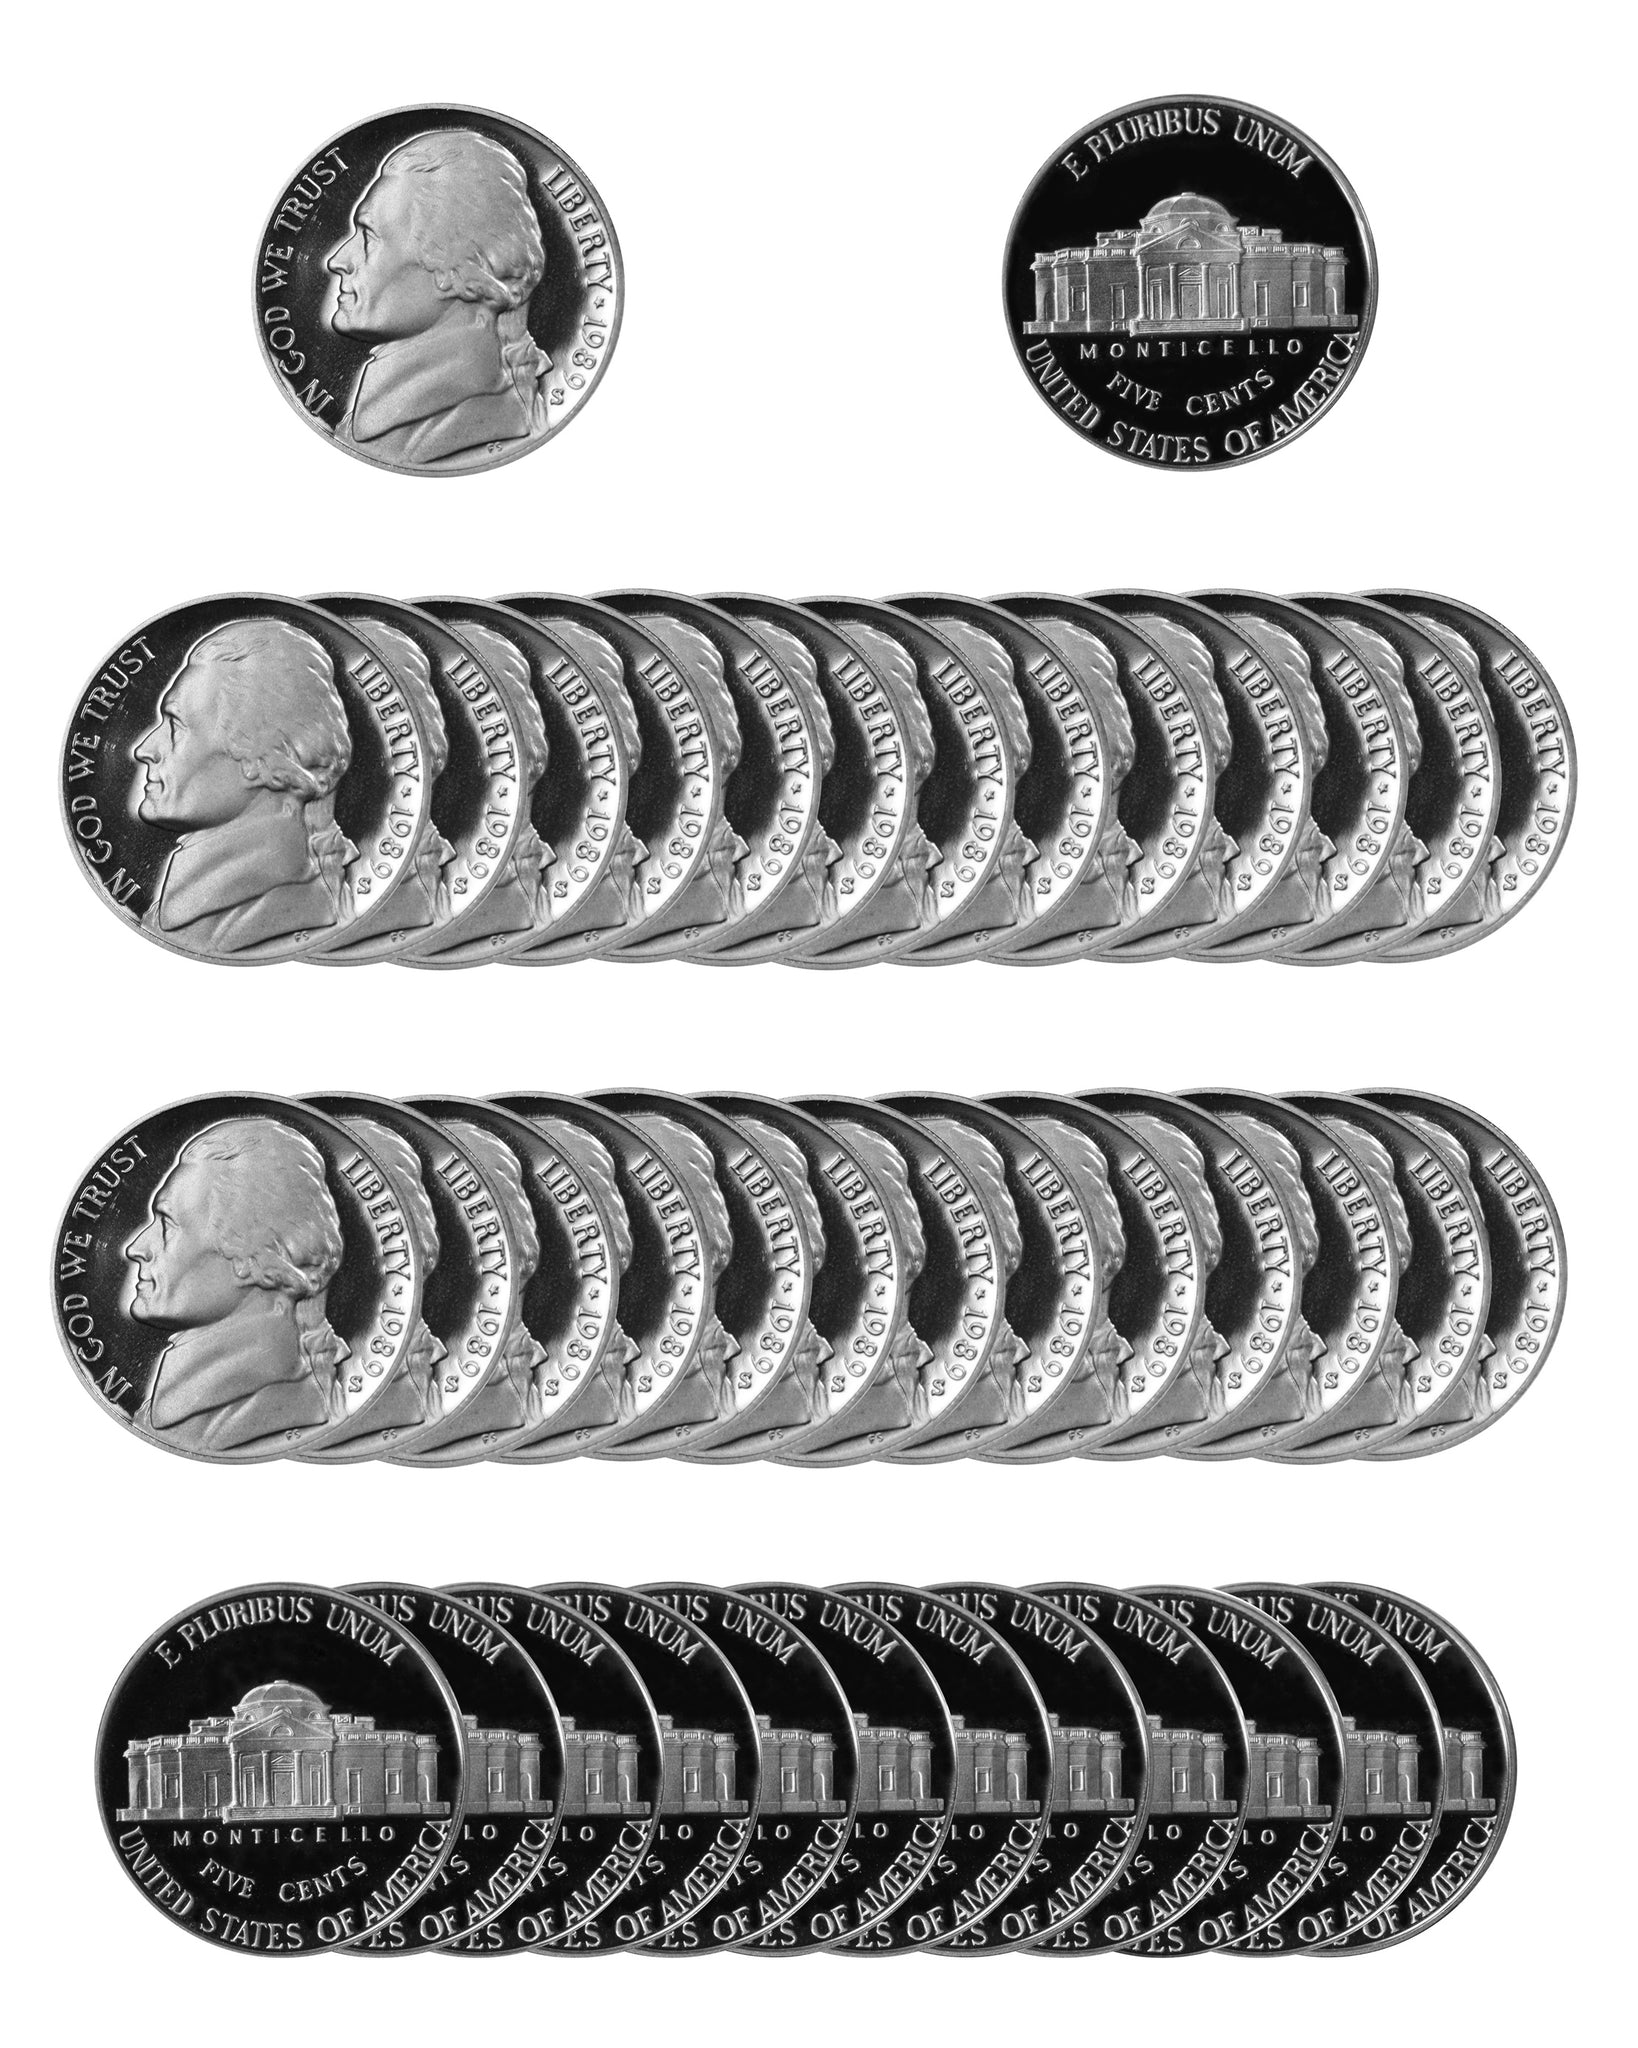 1989 S Jefferson Nickel Gem Proof Roll (40 Coins)